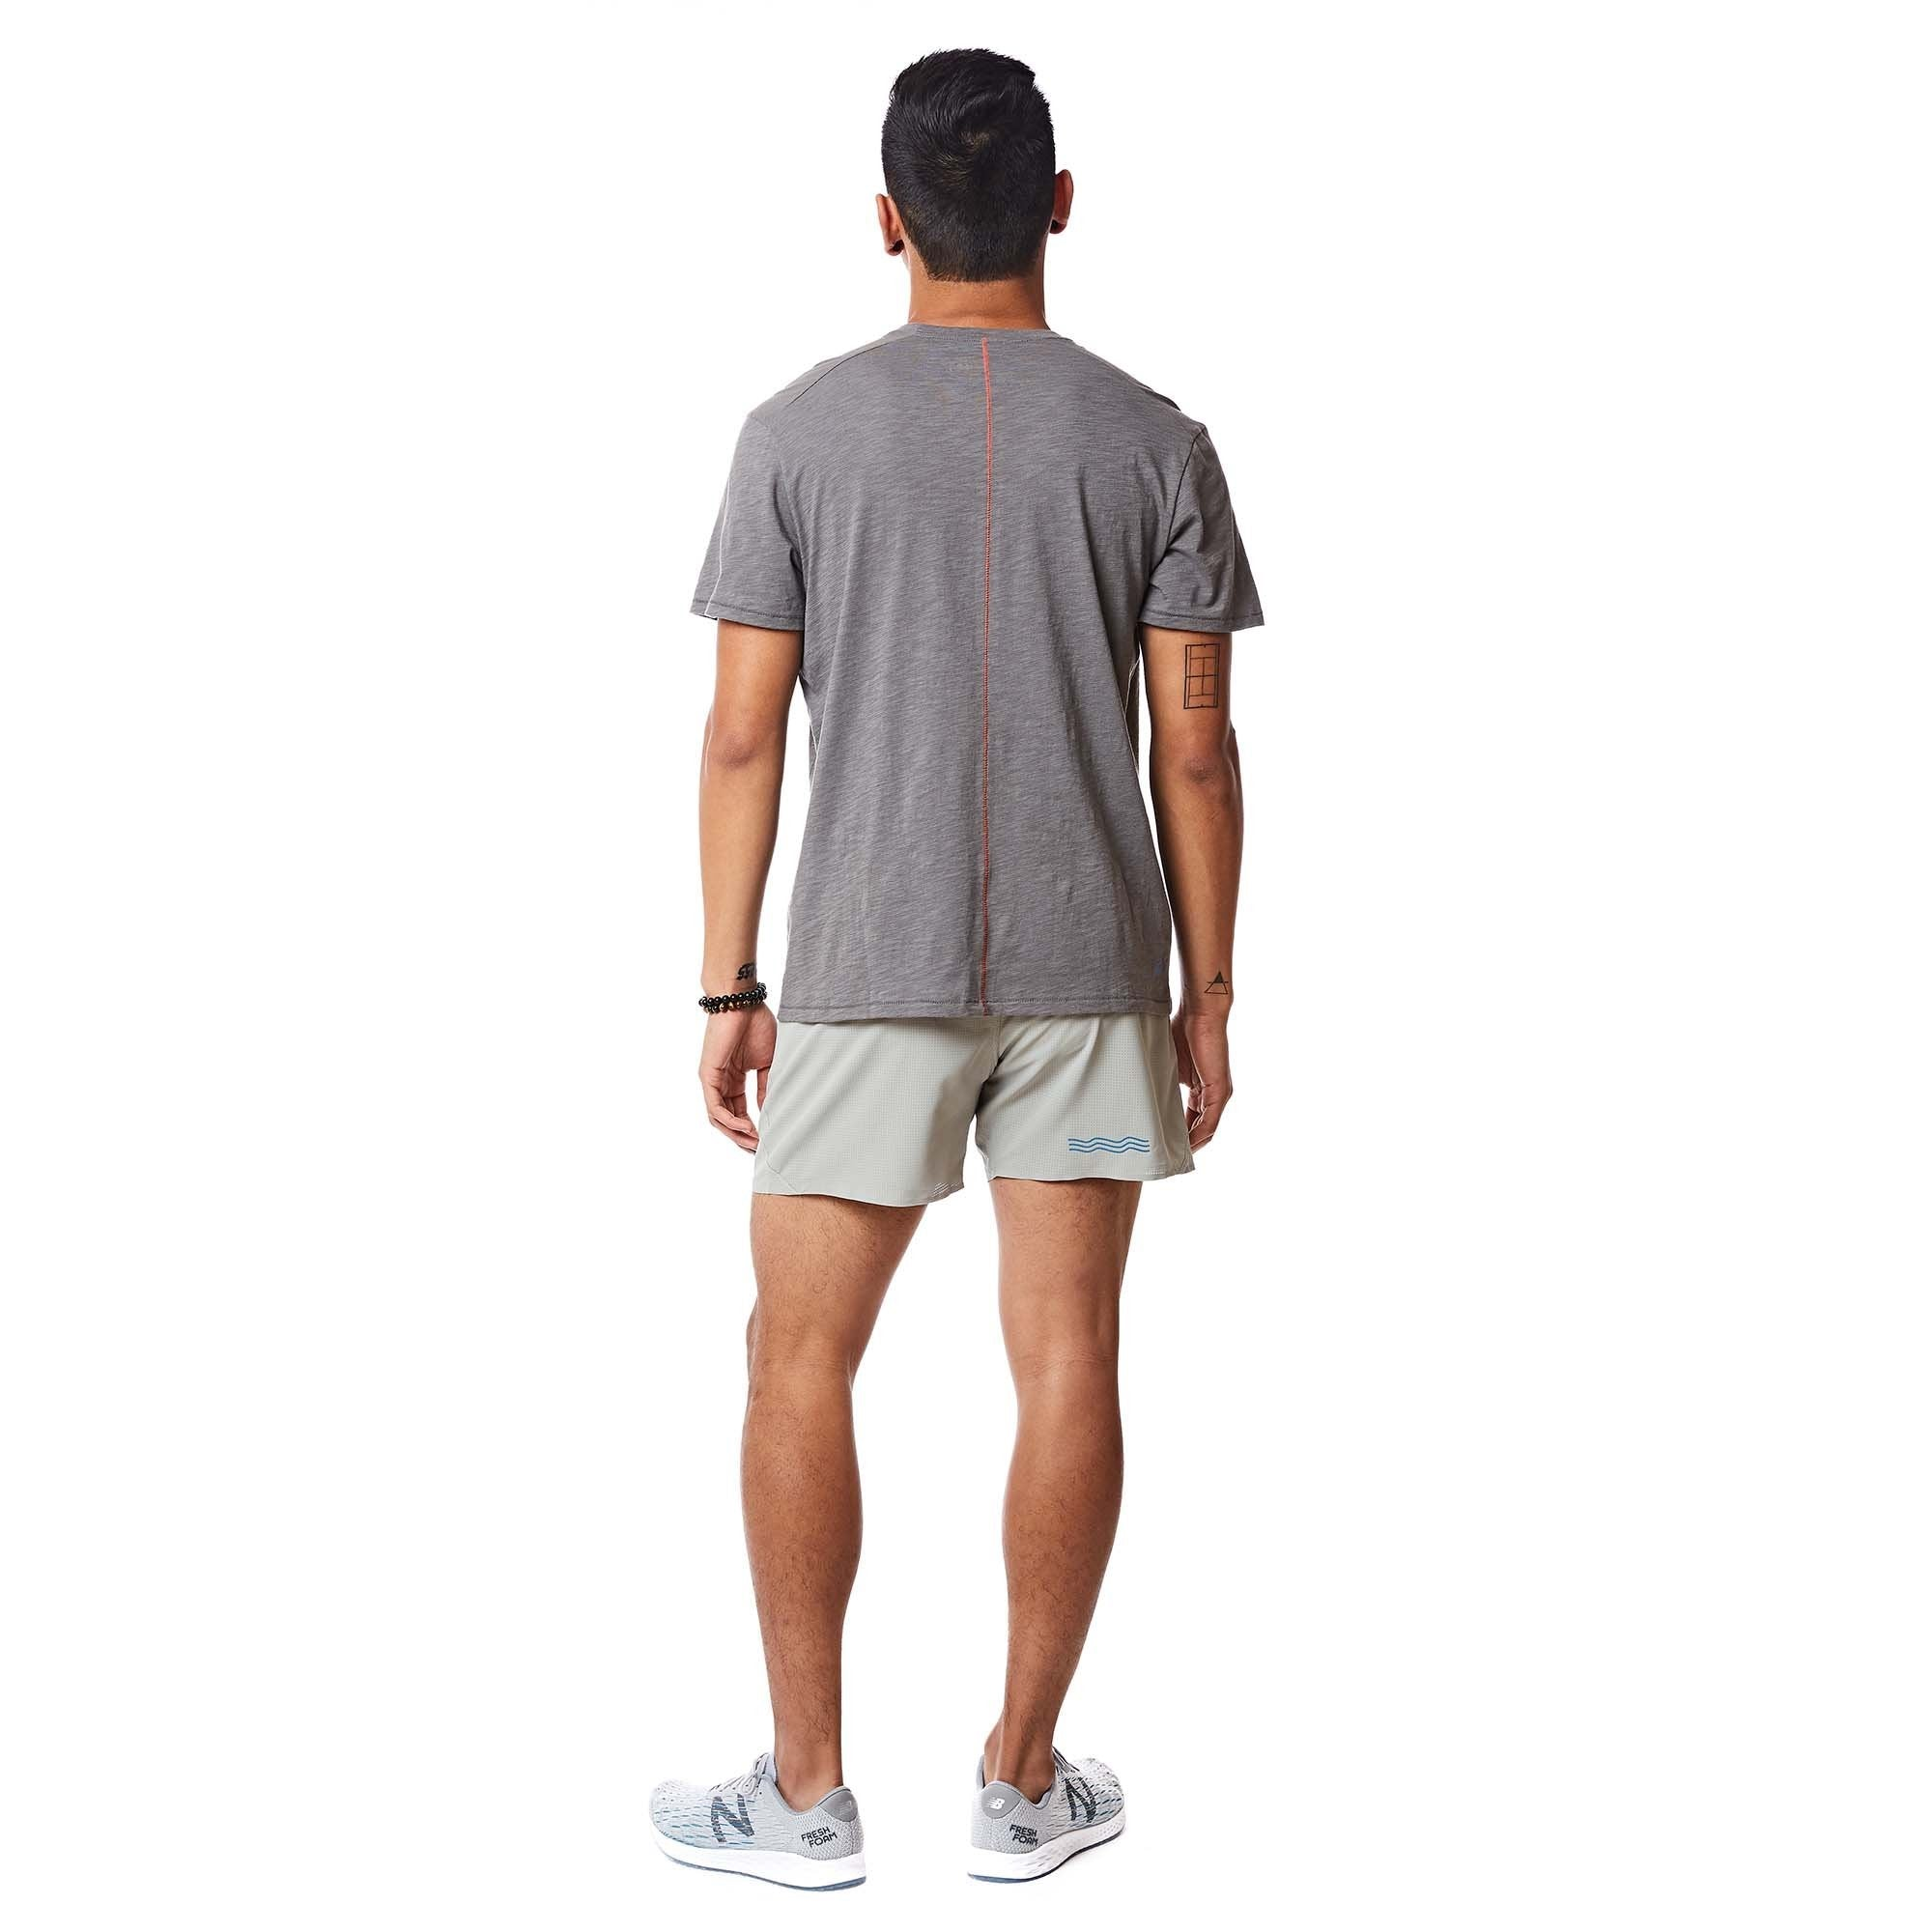 Janji | Runpaca Short Sleeve in Weathered Stone